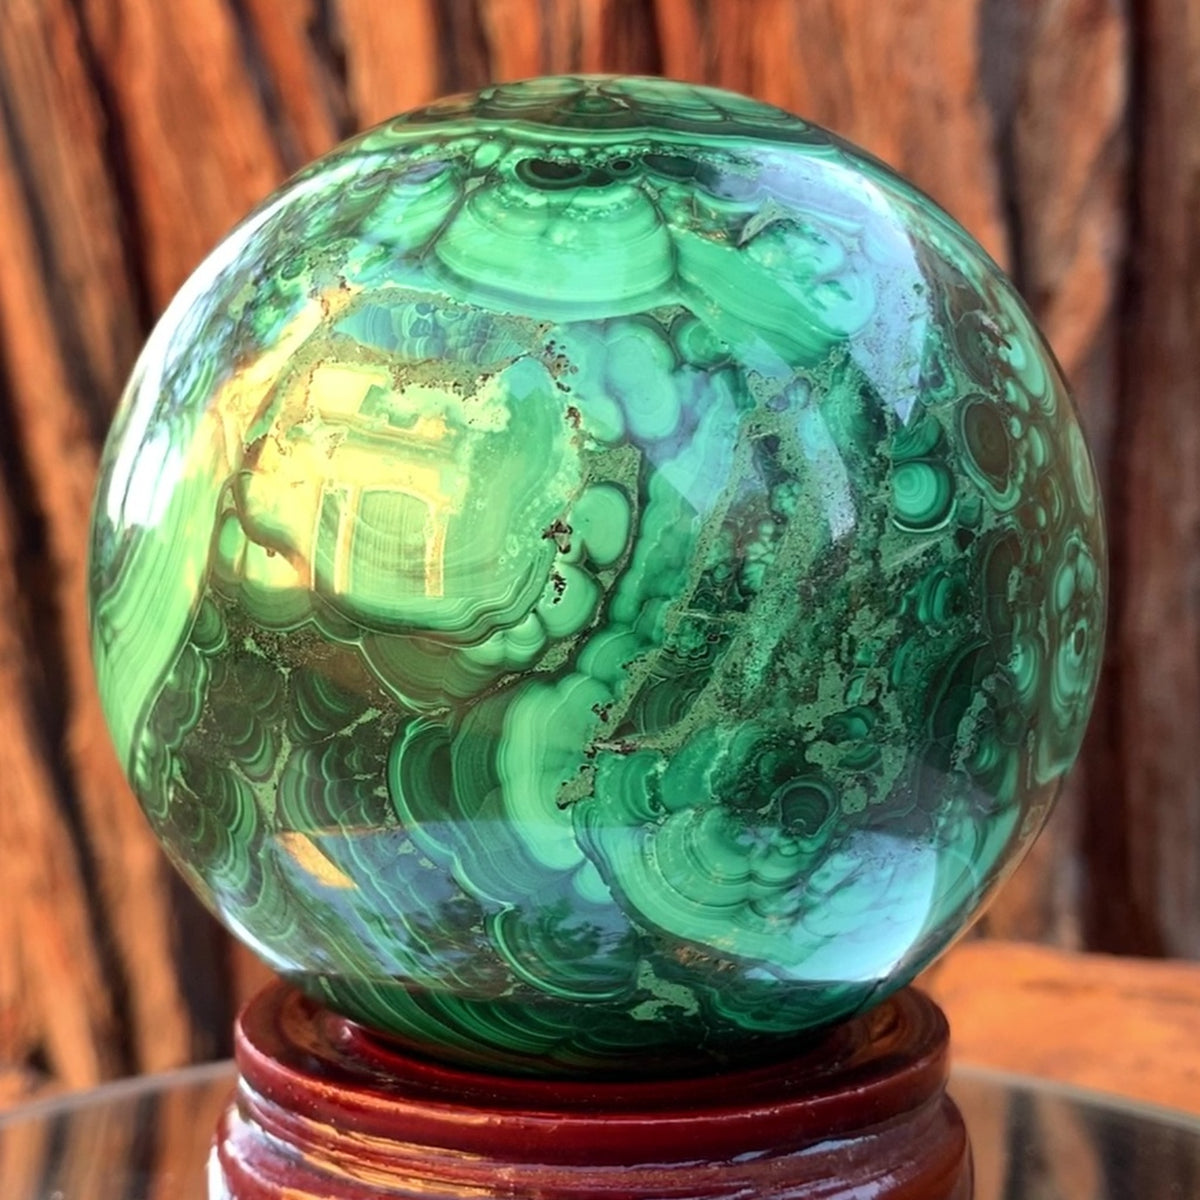 8.5cm 1.72kg Polished Malachite Sphere from Congo